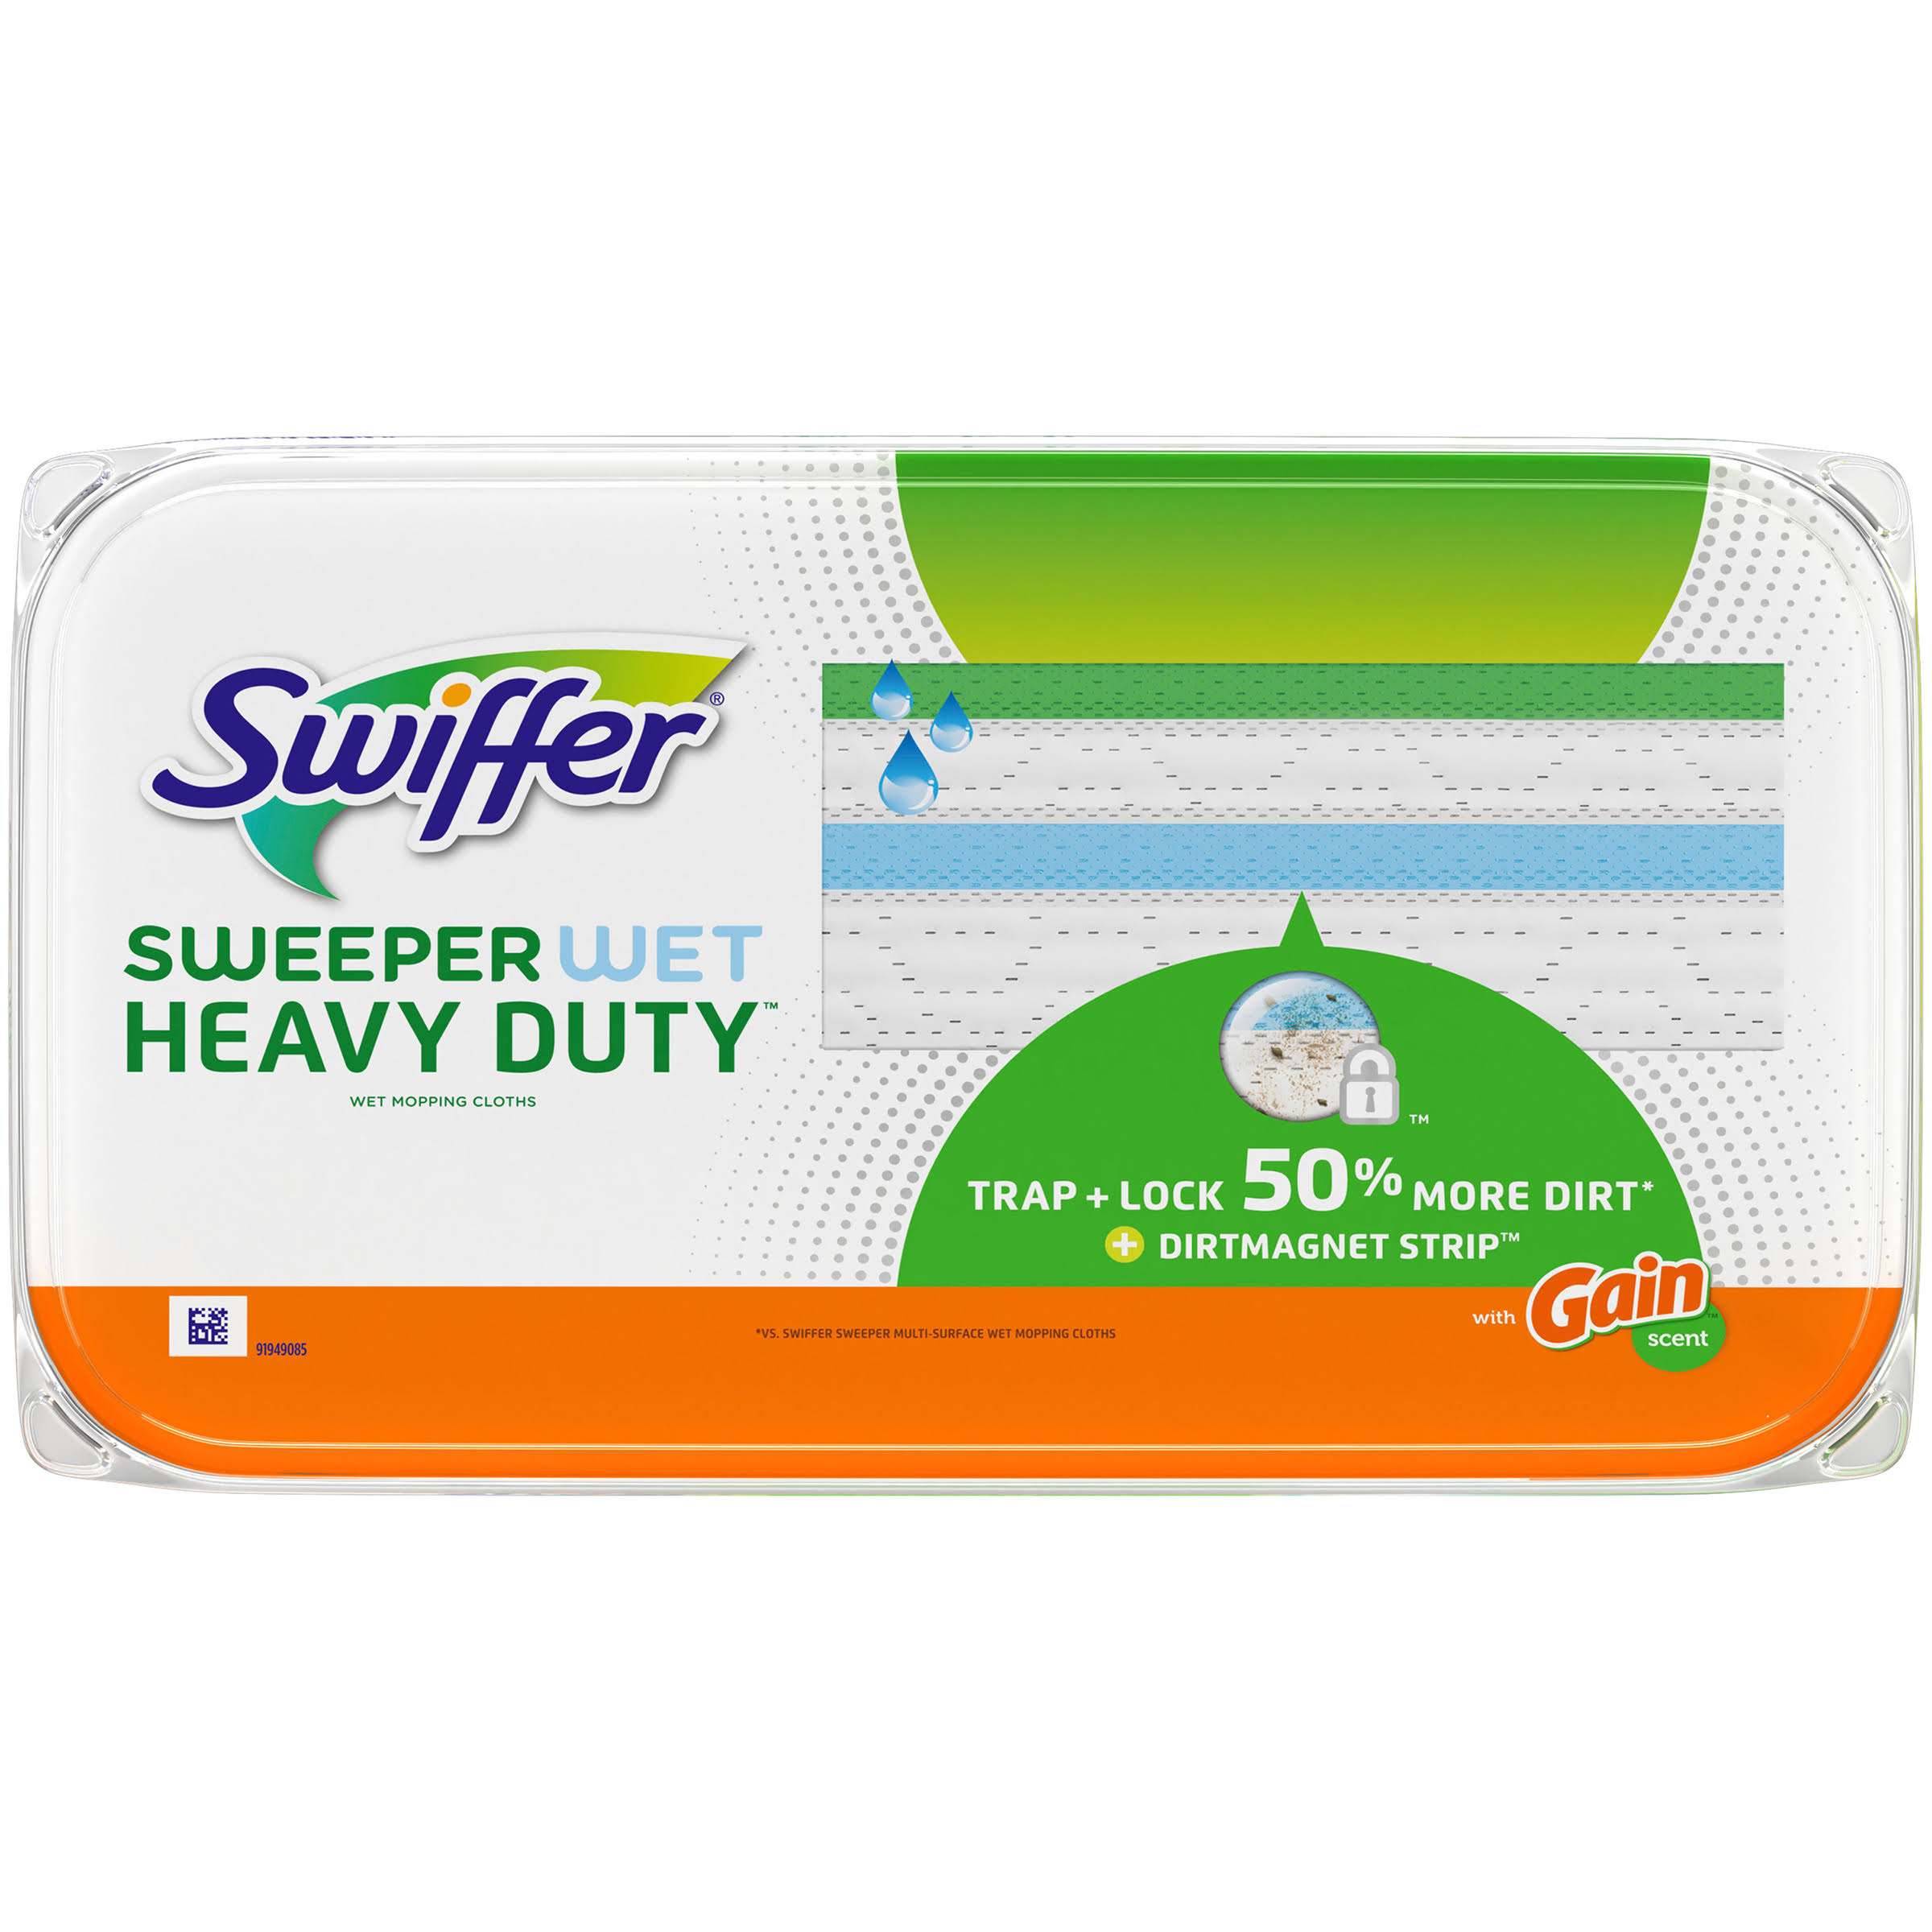 Swiffer Sweeper Wet Heavy Duty Mopping Cloths - 10ct